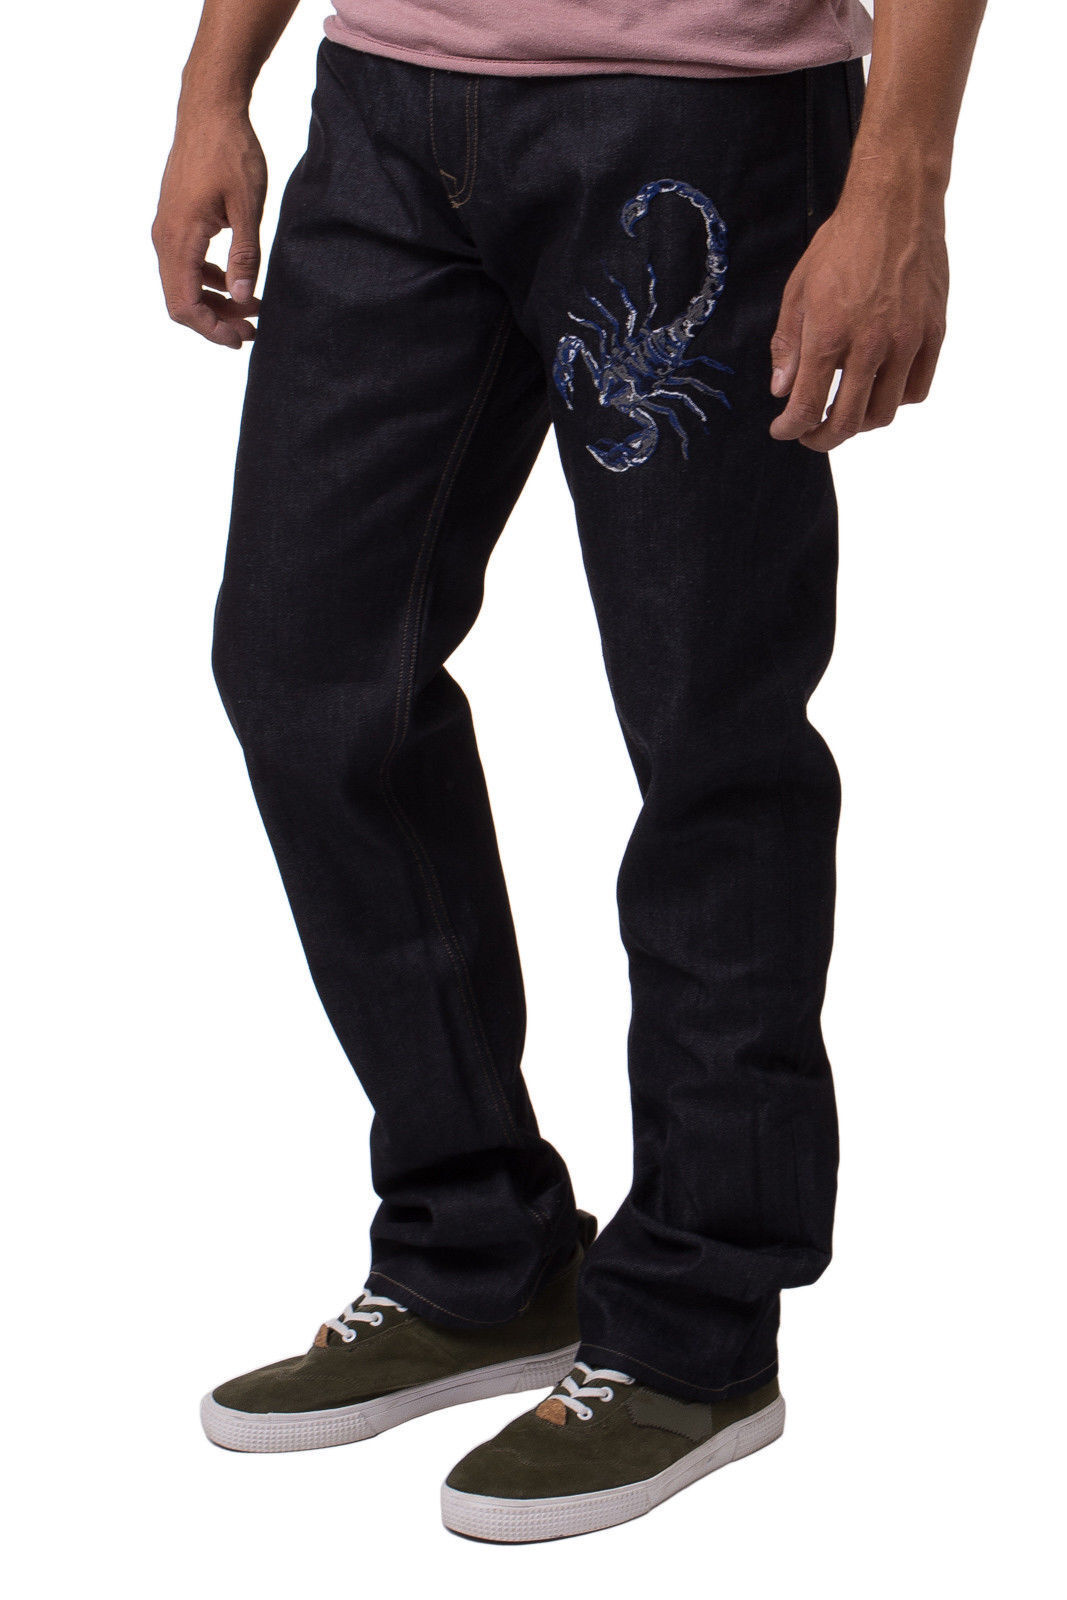 DIESEL schwarz Gold Scorpion Embroiderot Denim Jeans Trousers UK34 IT50 W34 x L34